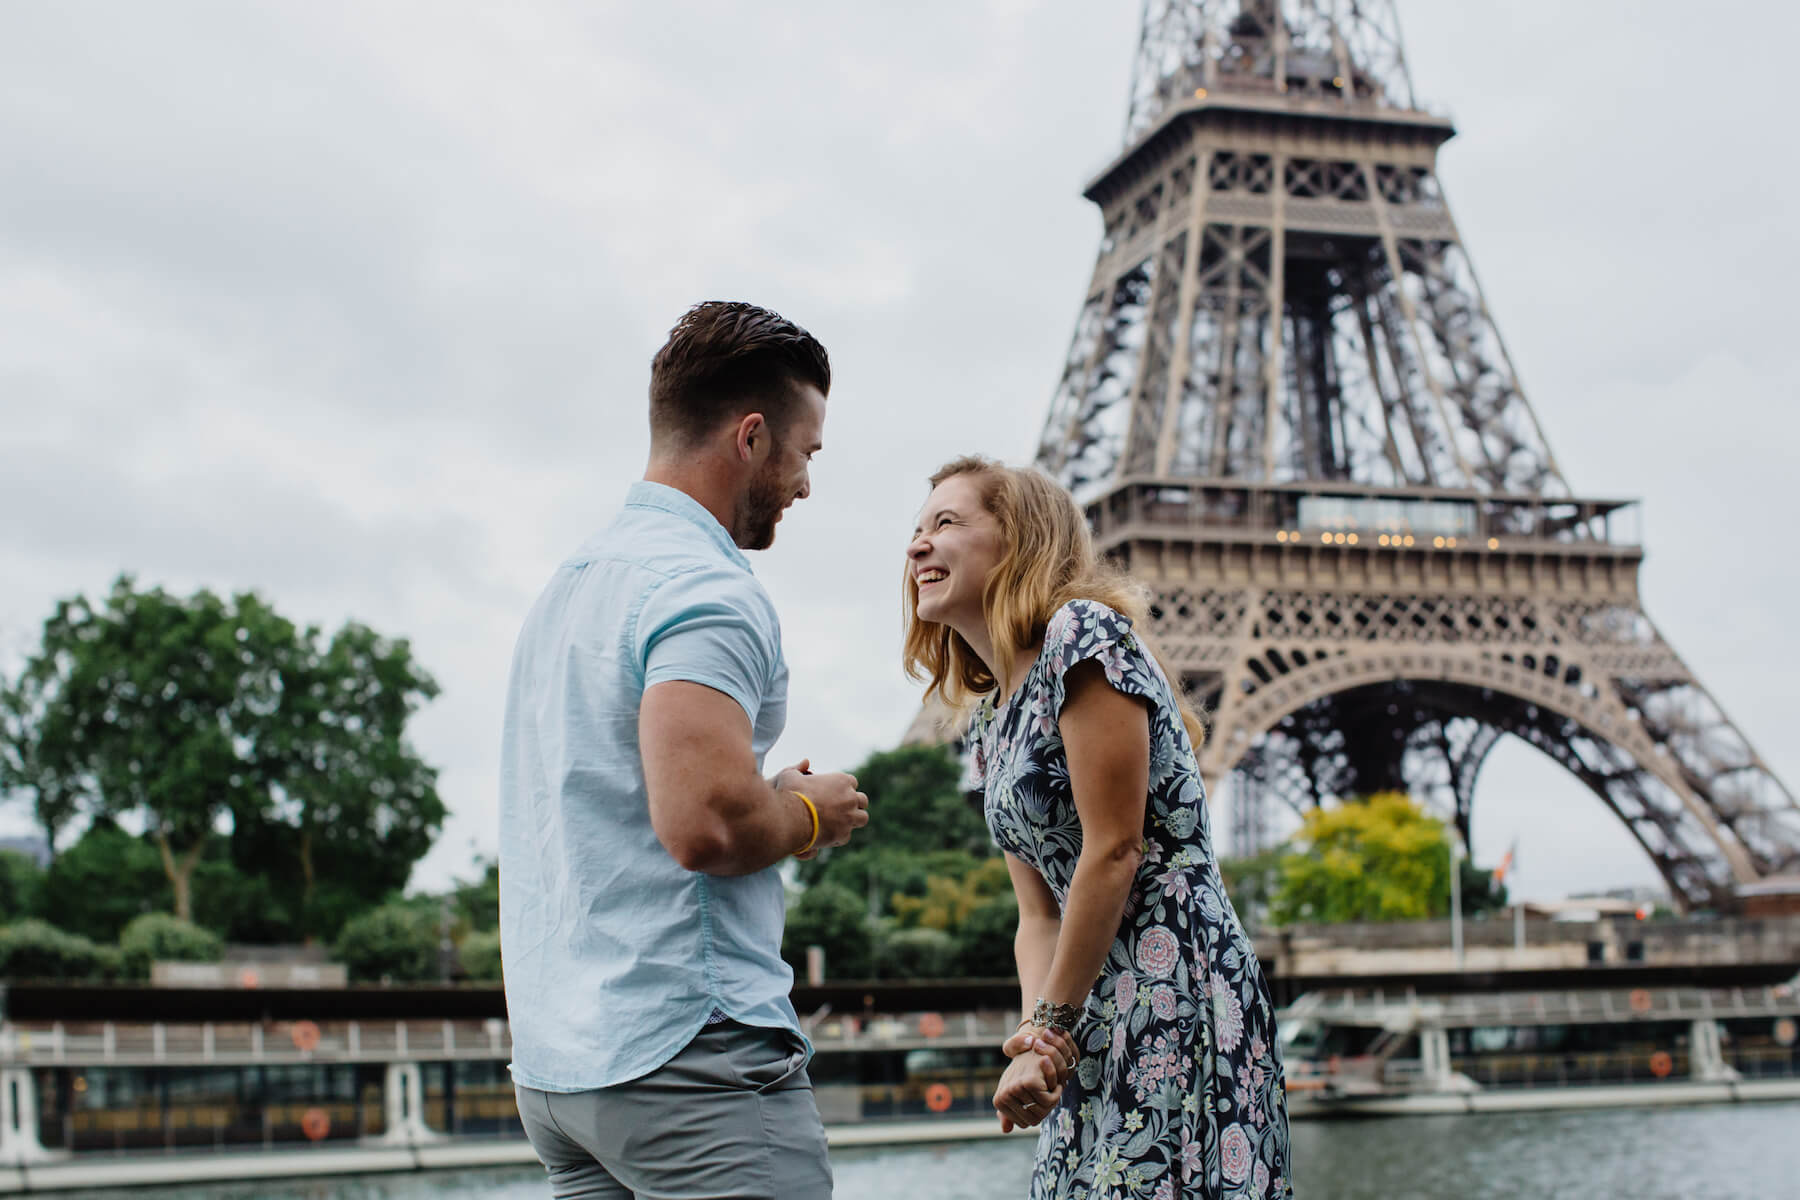 epic paris proposal, couple in front of the Eiffel Tower in Paris, France